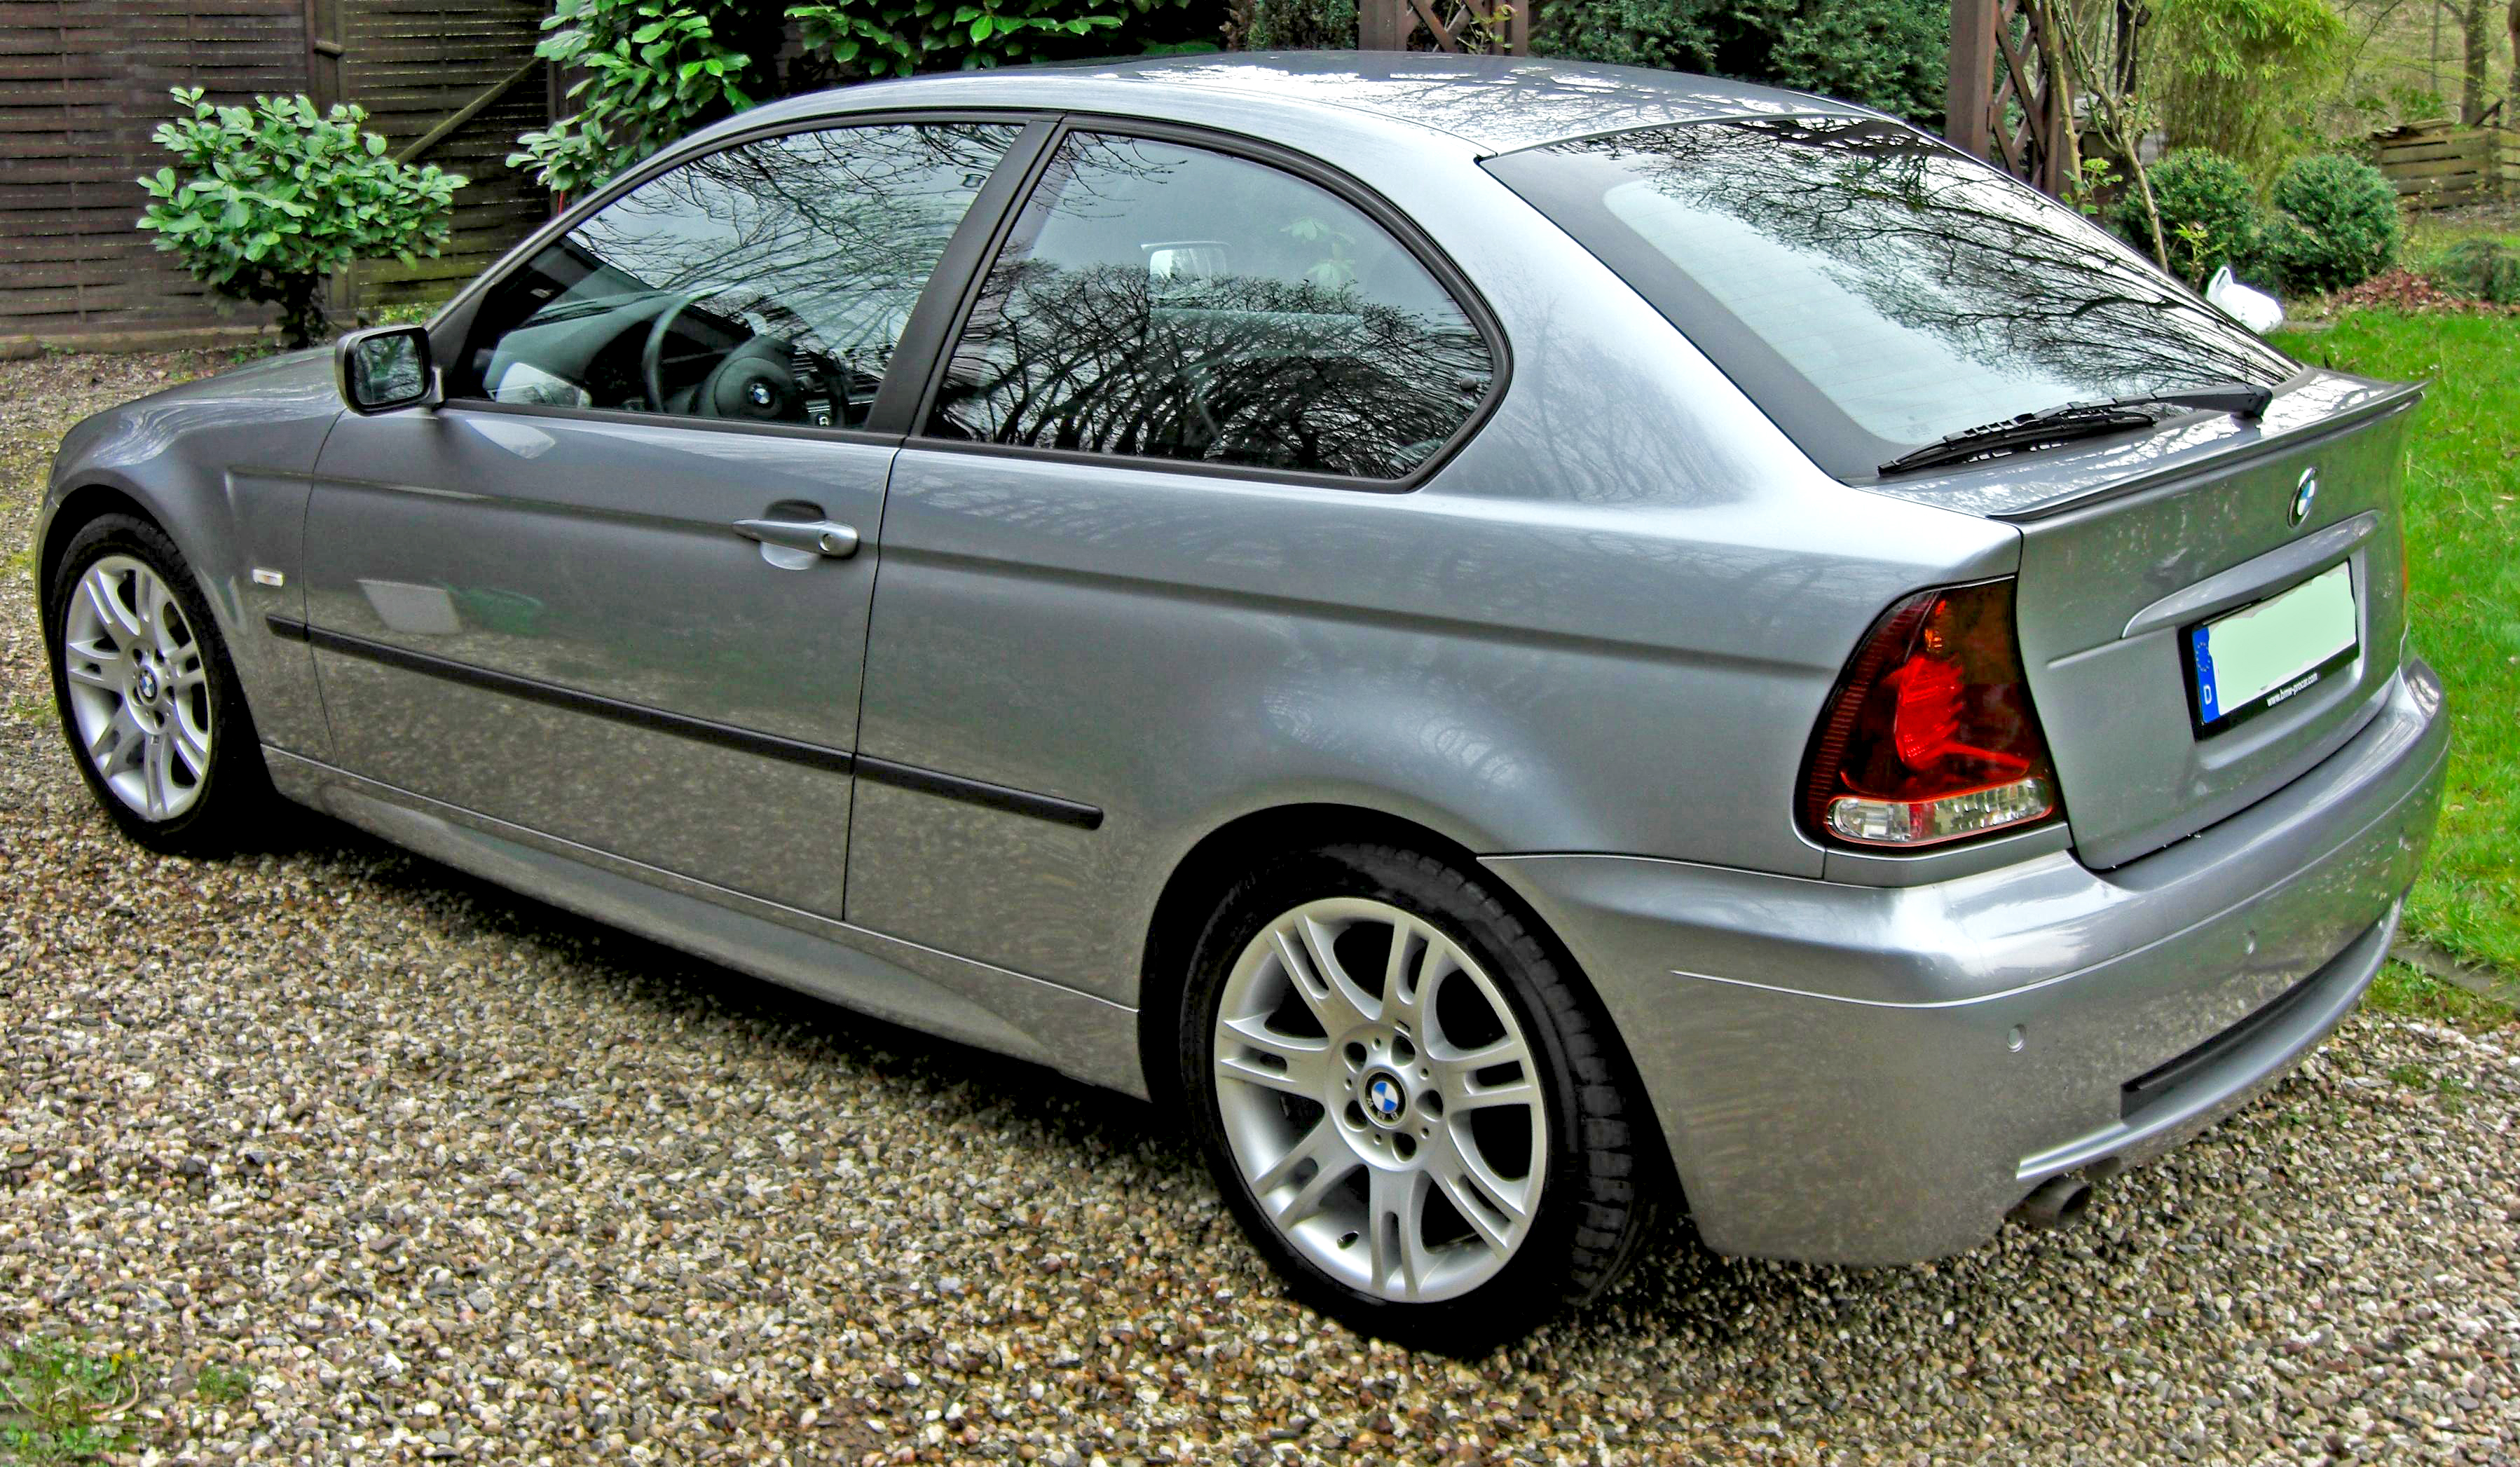 File:BMW 316ti Compact M-Sportpaket side-2004.jpg - Wikimedia Commons